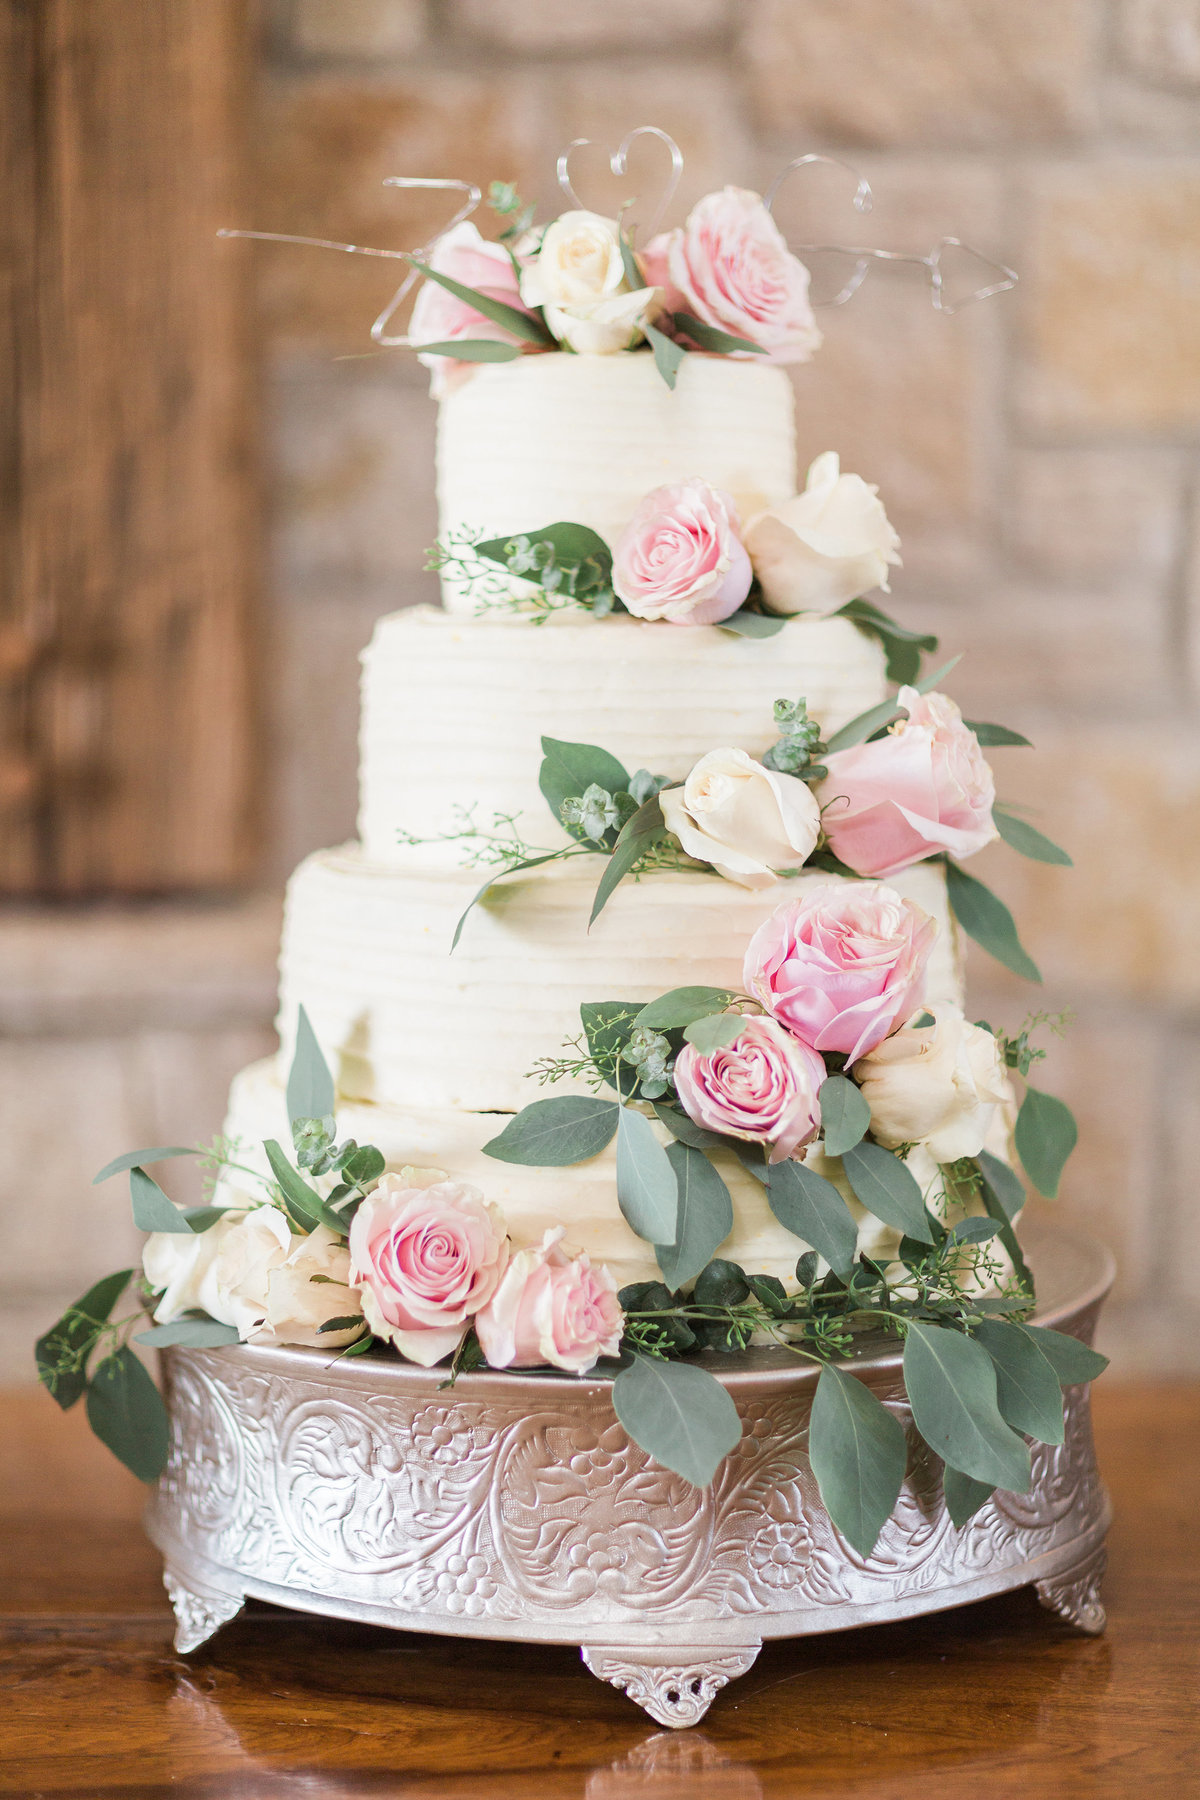 Kairos Celebration Barn Wedding Cake